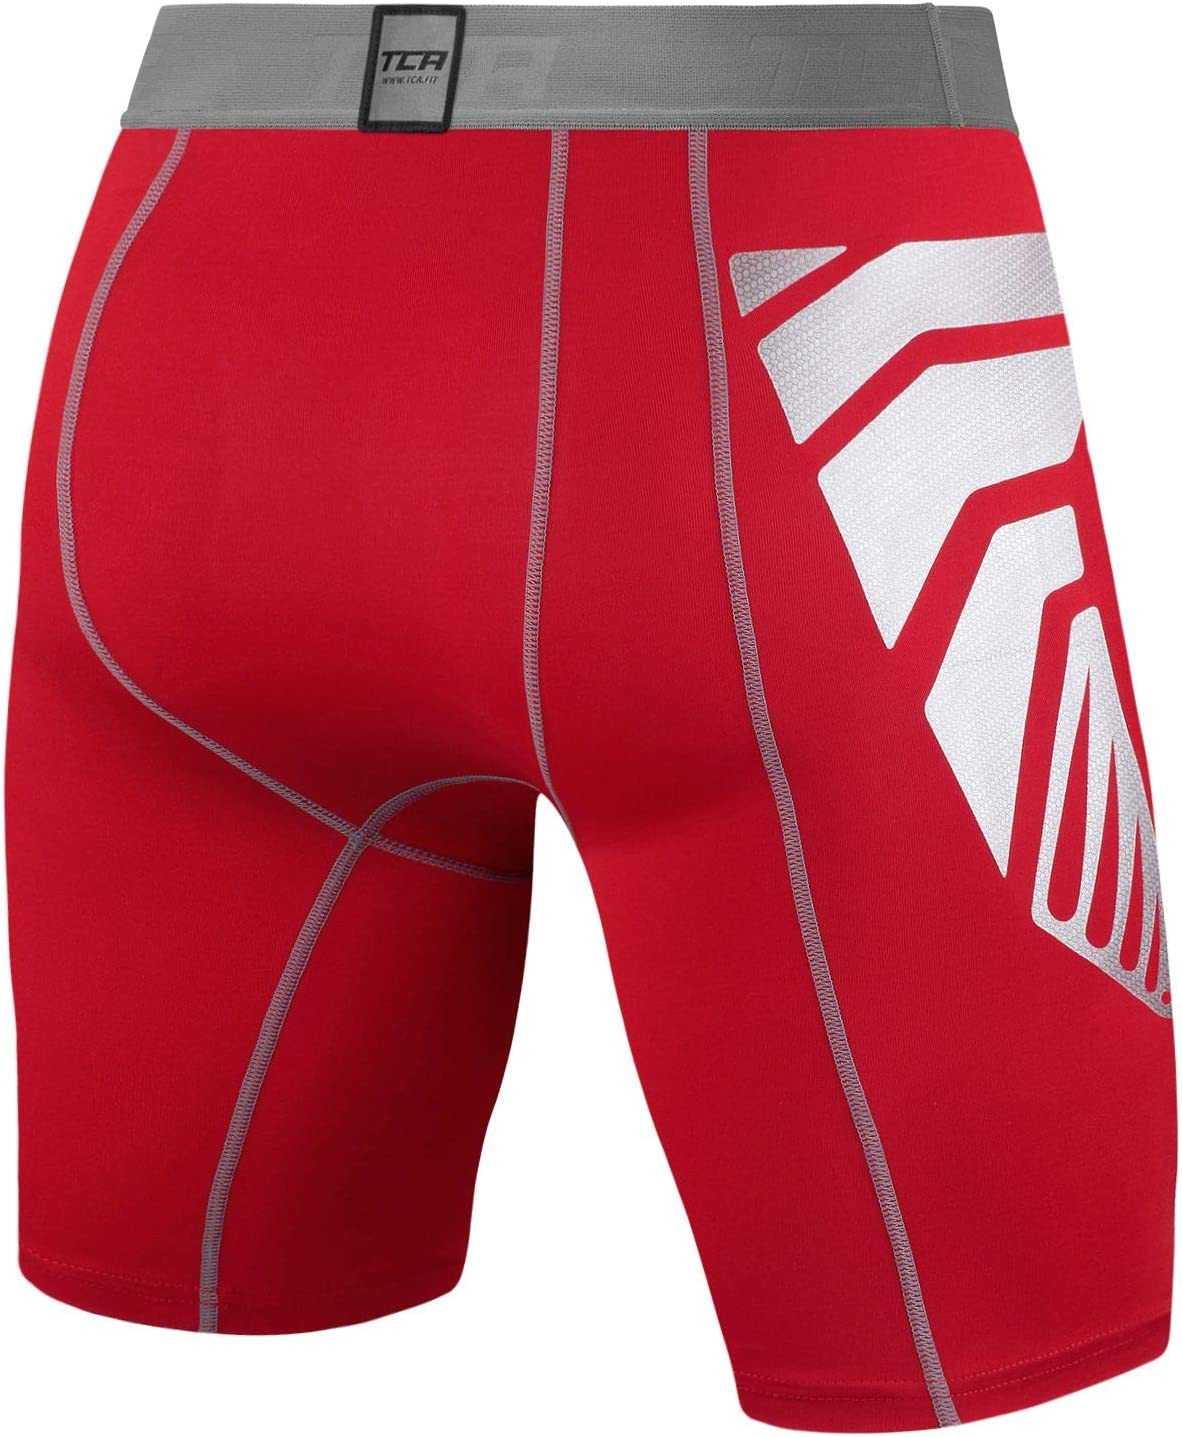 TCA Ragazzi CarbonForce PRO Compression Base Layer Shorts Termico